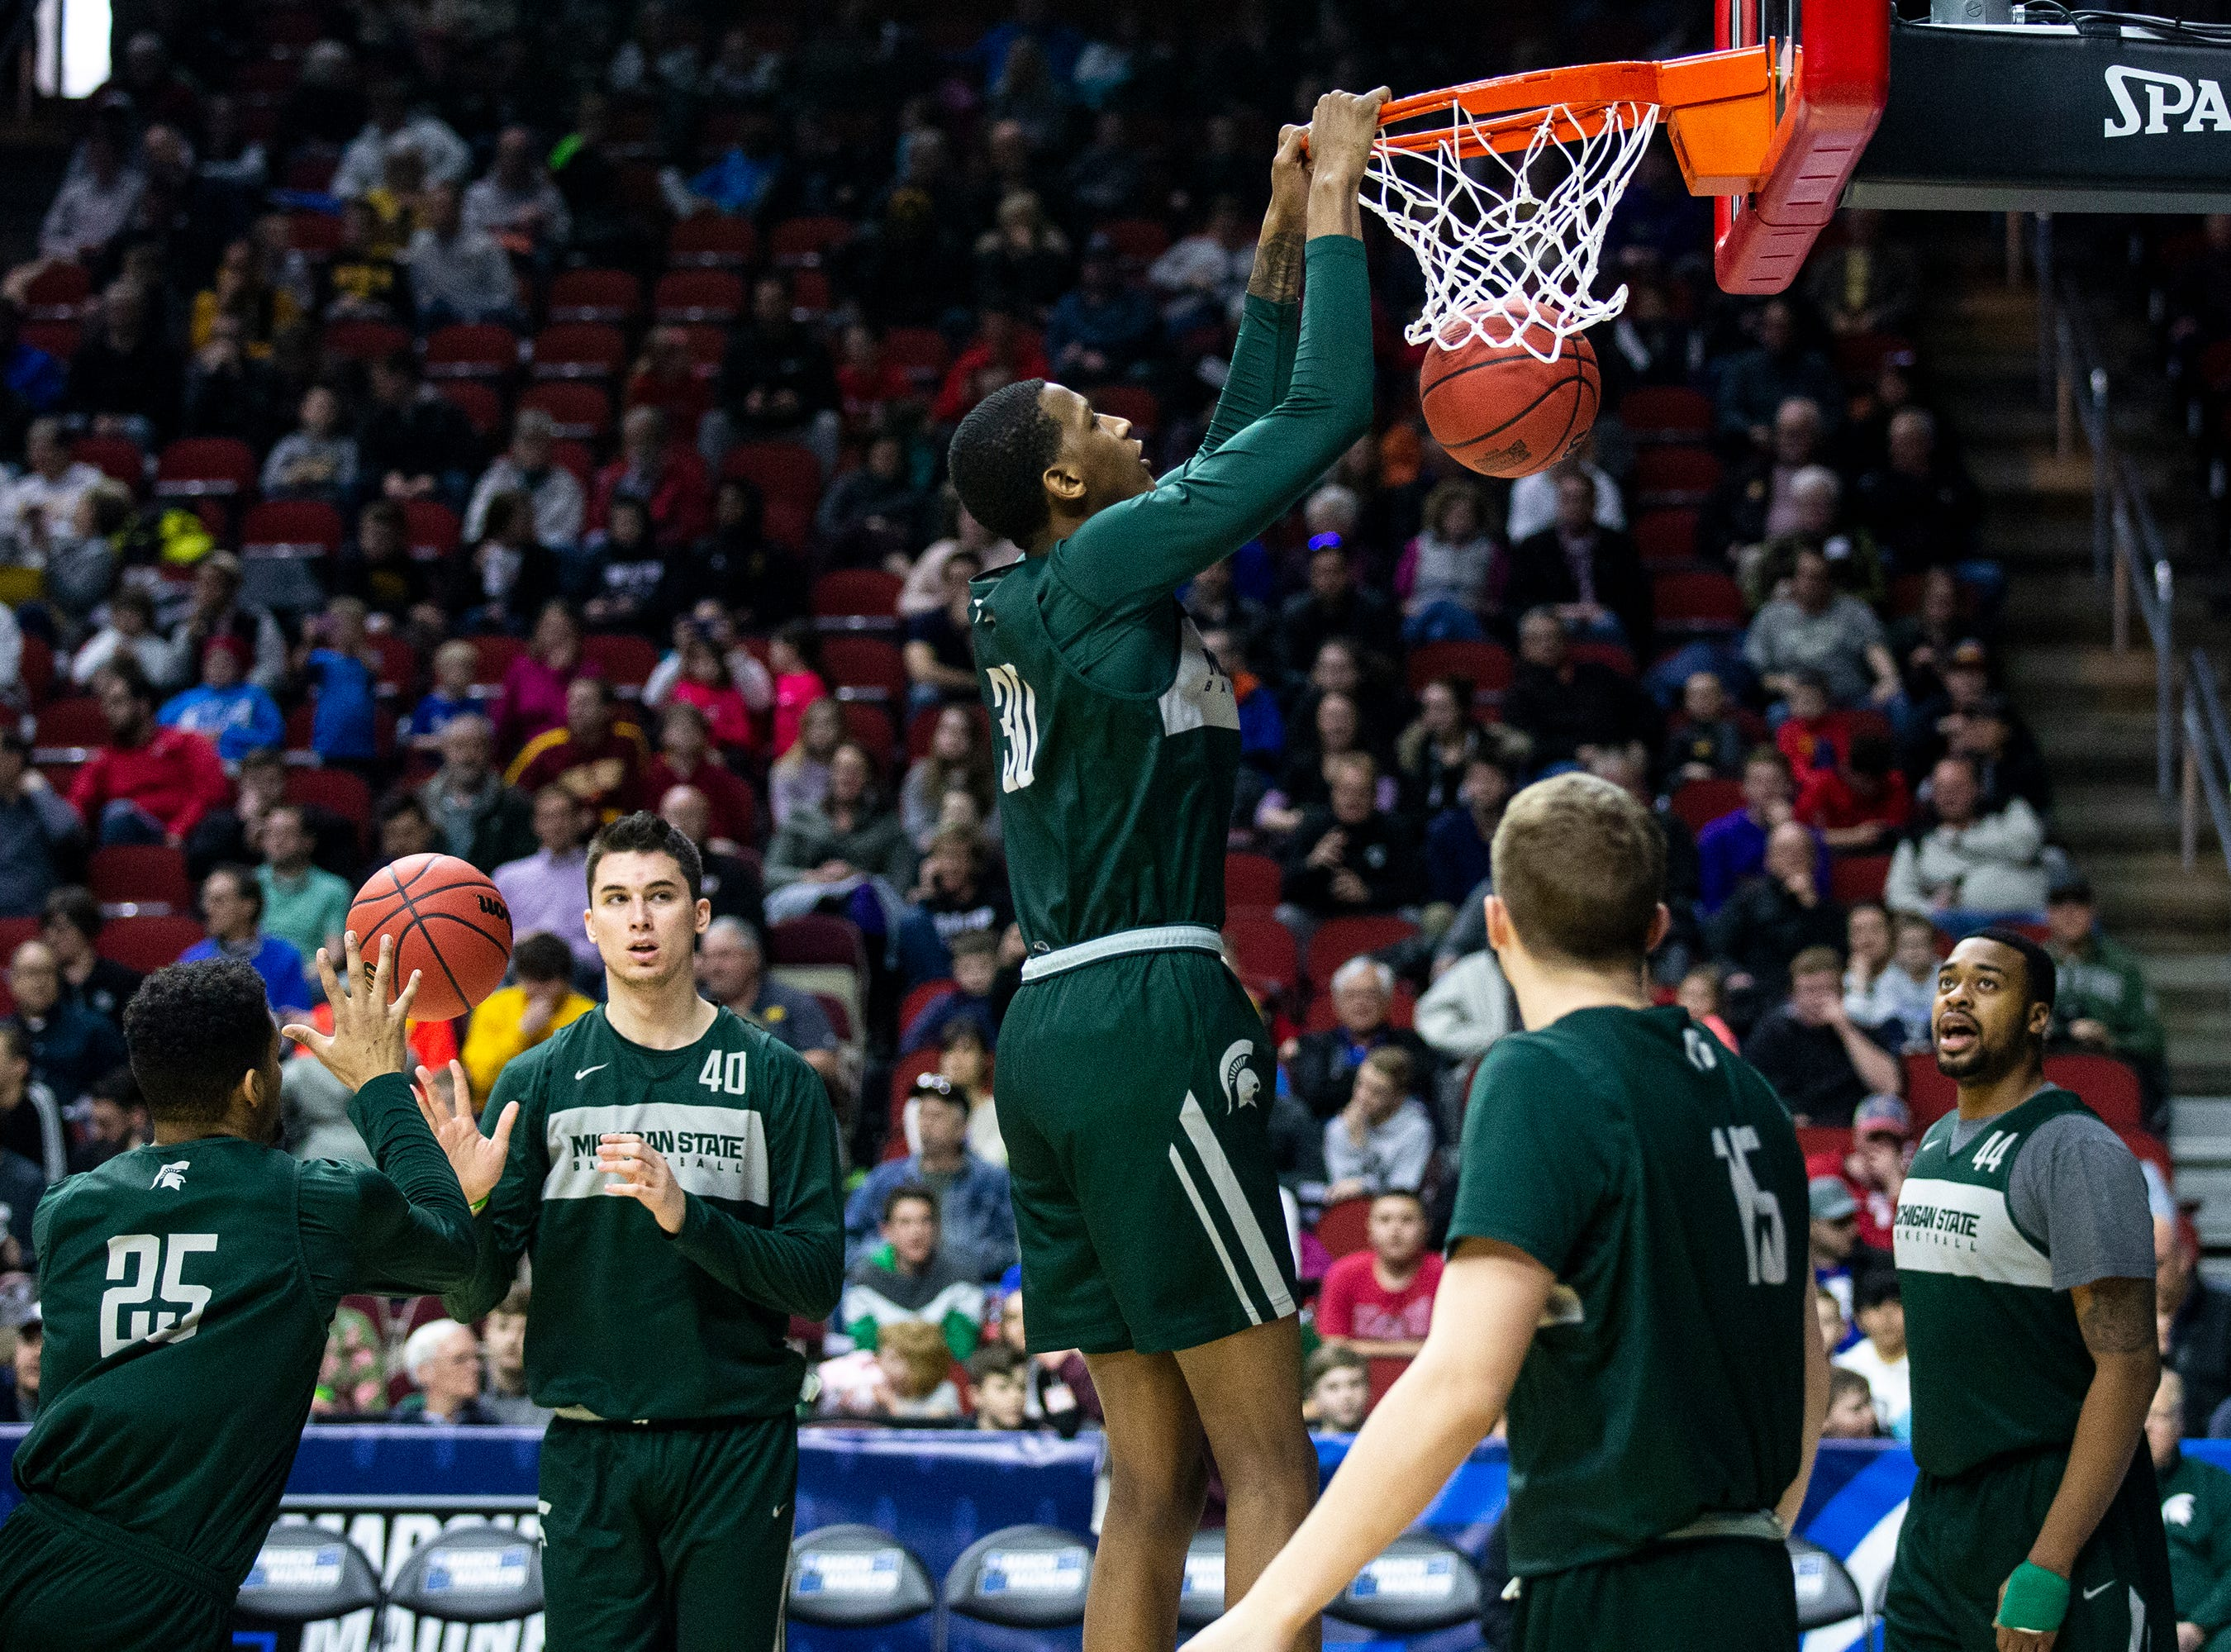 Michigan State's Marcus Bingham Jr. dunks the ball during Michigan State's open practice before the first round of the NCAA Men's Basketball Tournament on Wednesday, March 20, 2019, at Wells Fargo Arena in Des Moines, Iowa.